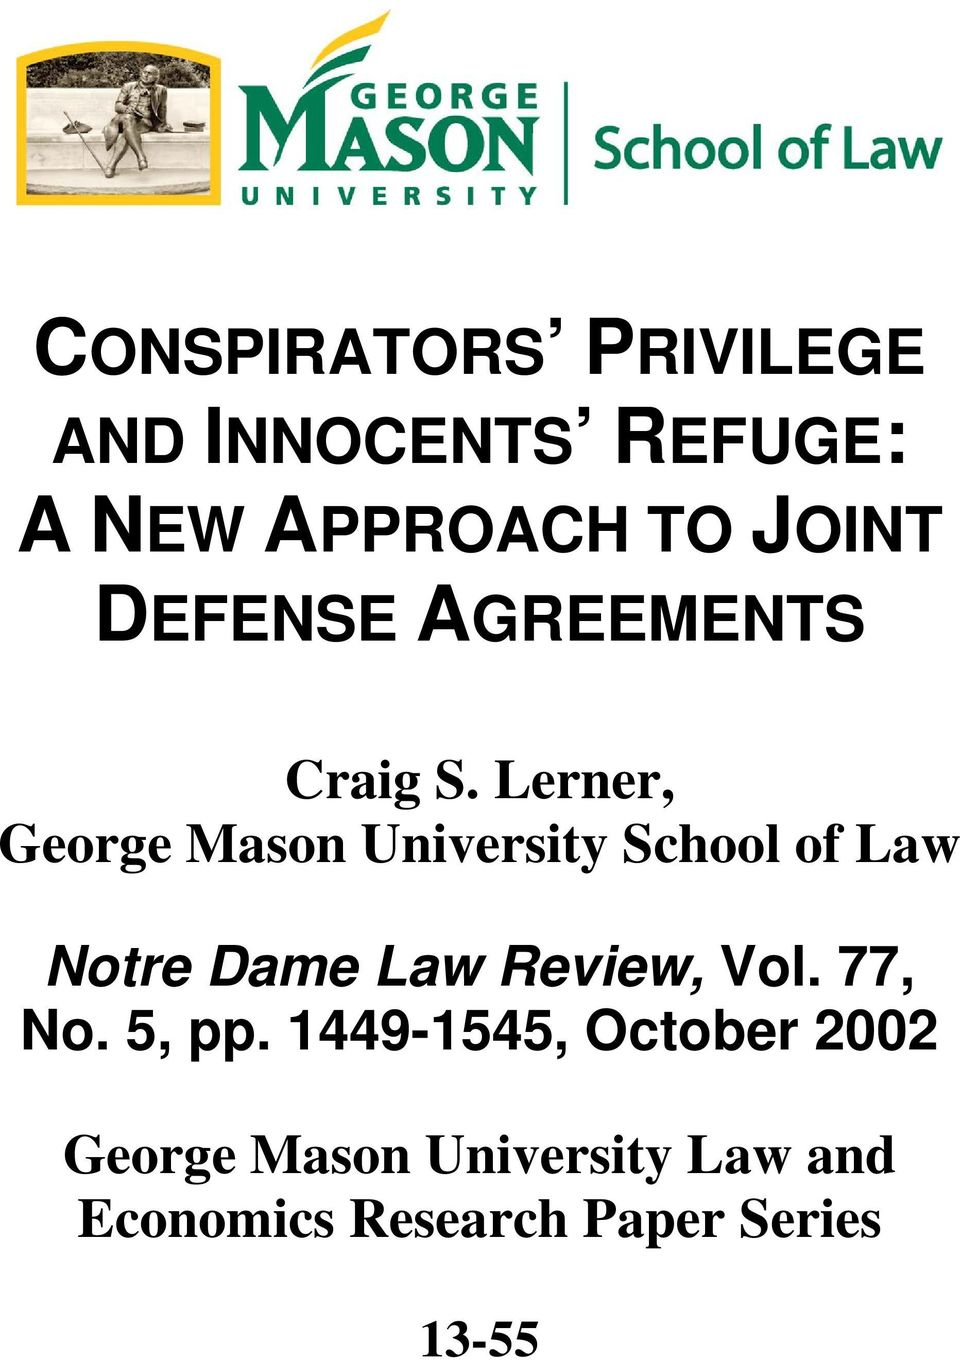 Lerner, George Mason University School of Law Notre Dame Law Review,